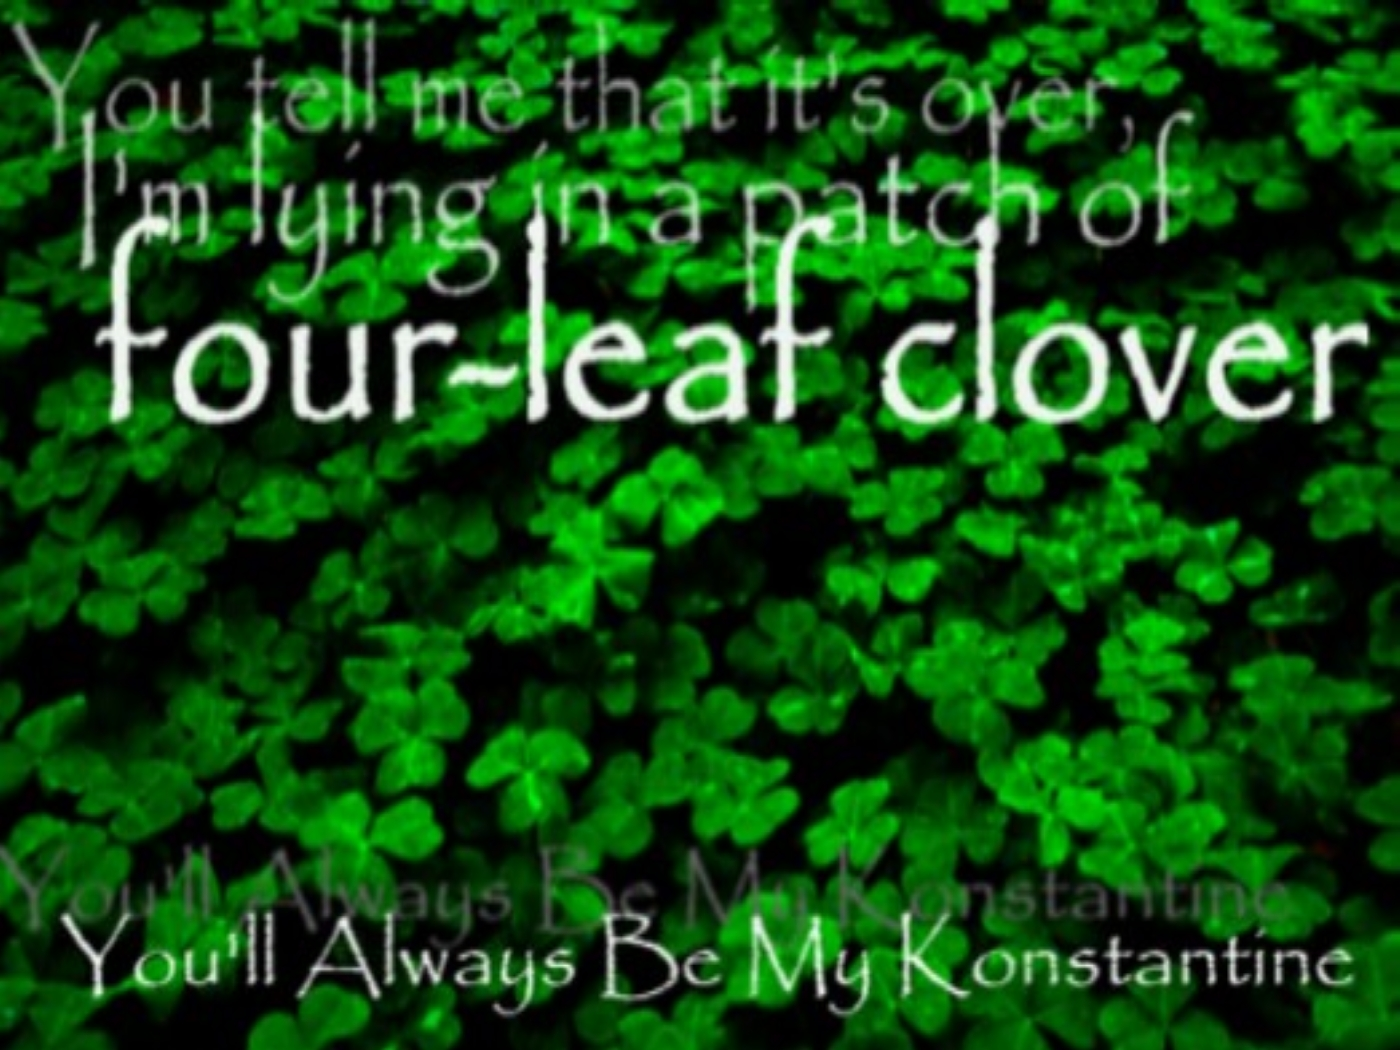 Four Leaf Clover Wallpaper by emilygibson 1400x1050